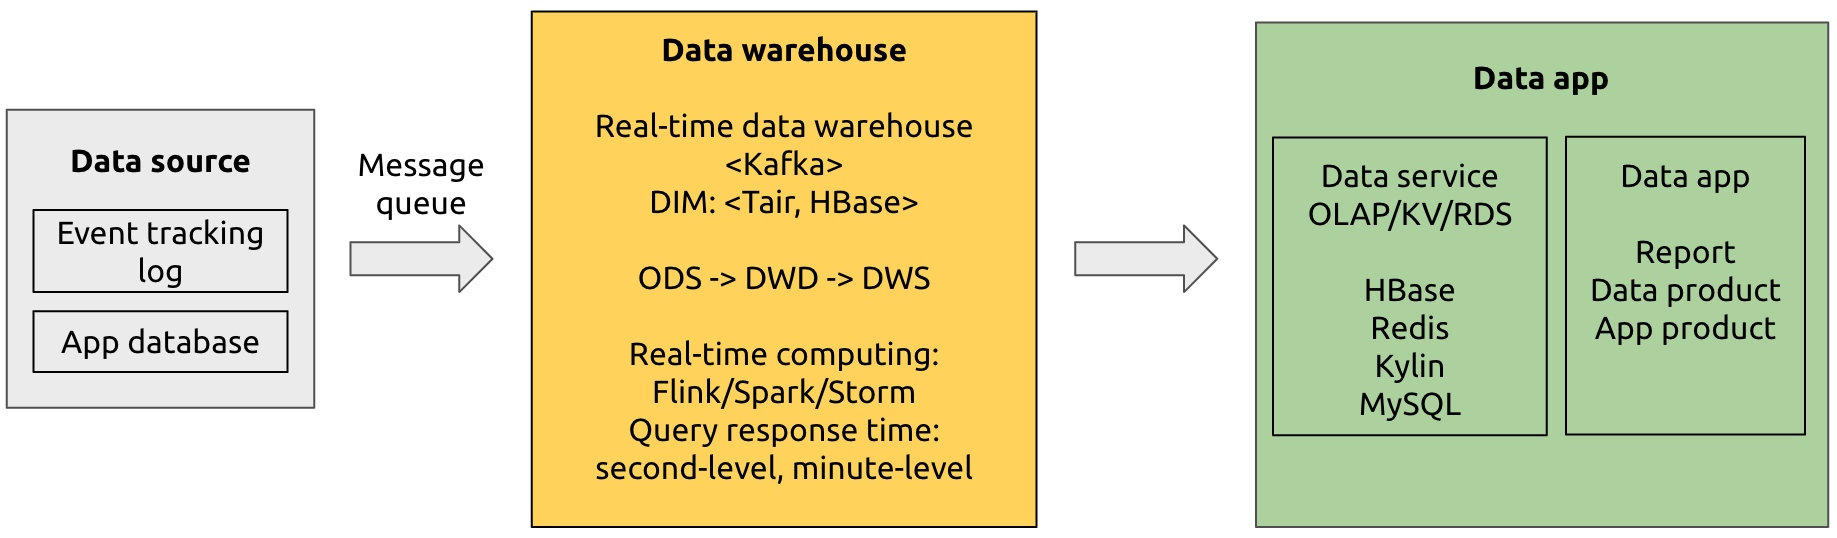 Kappa architecture for real-time data warehousing